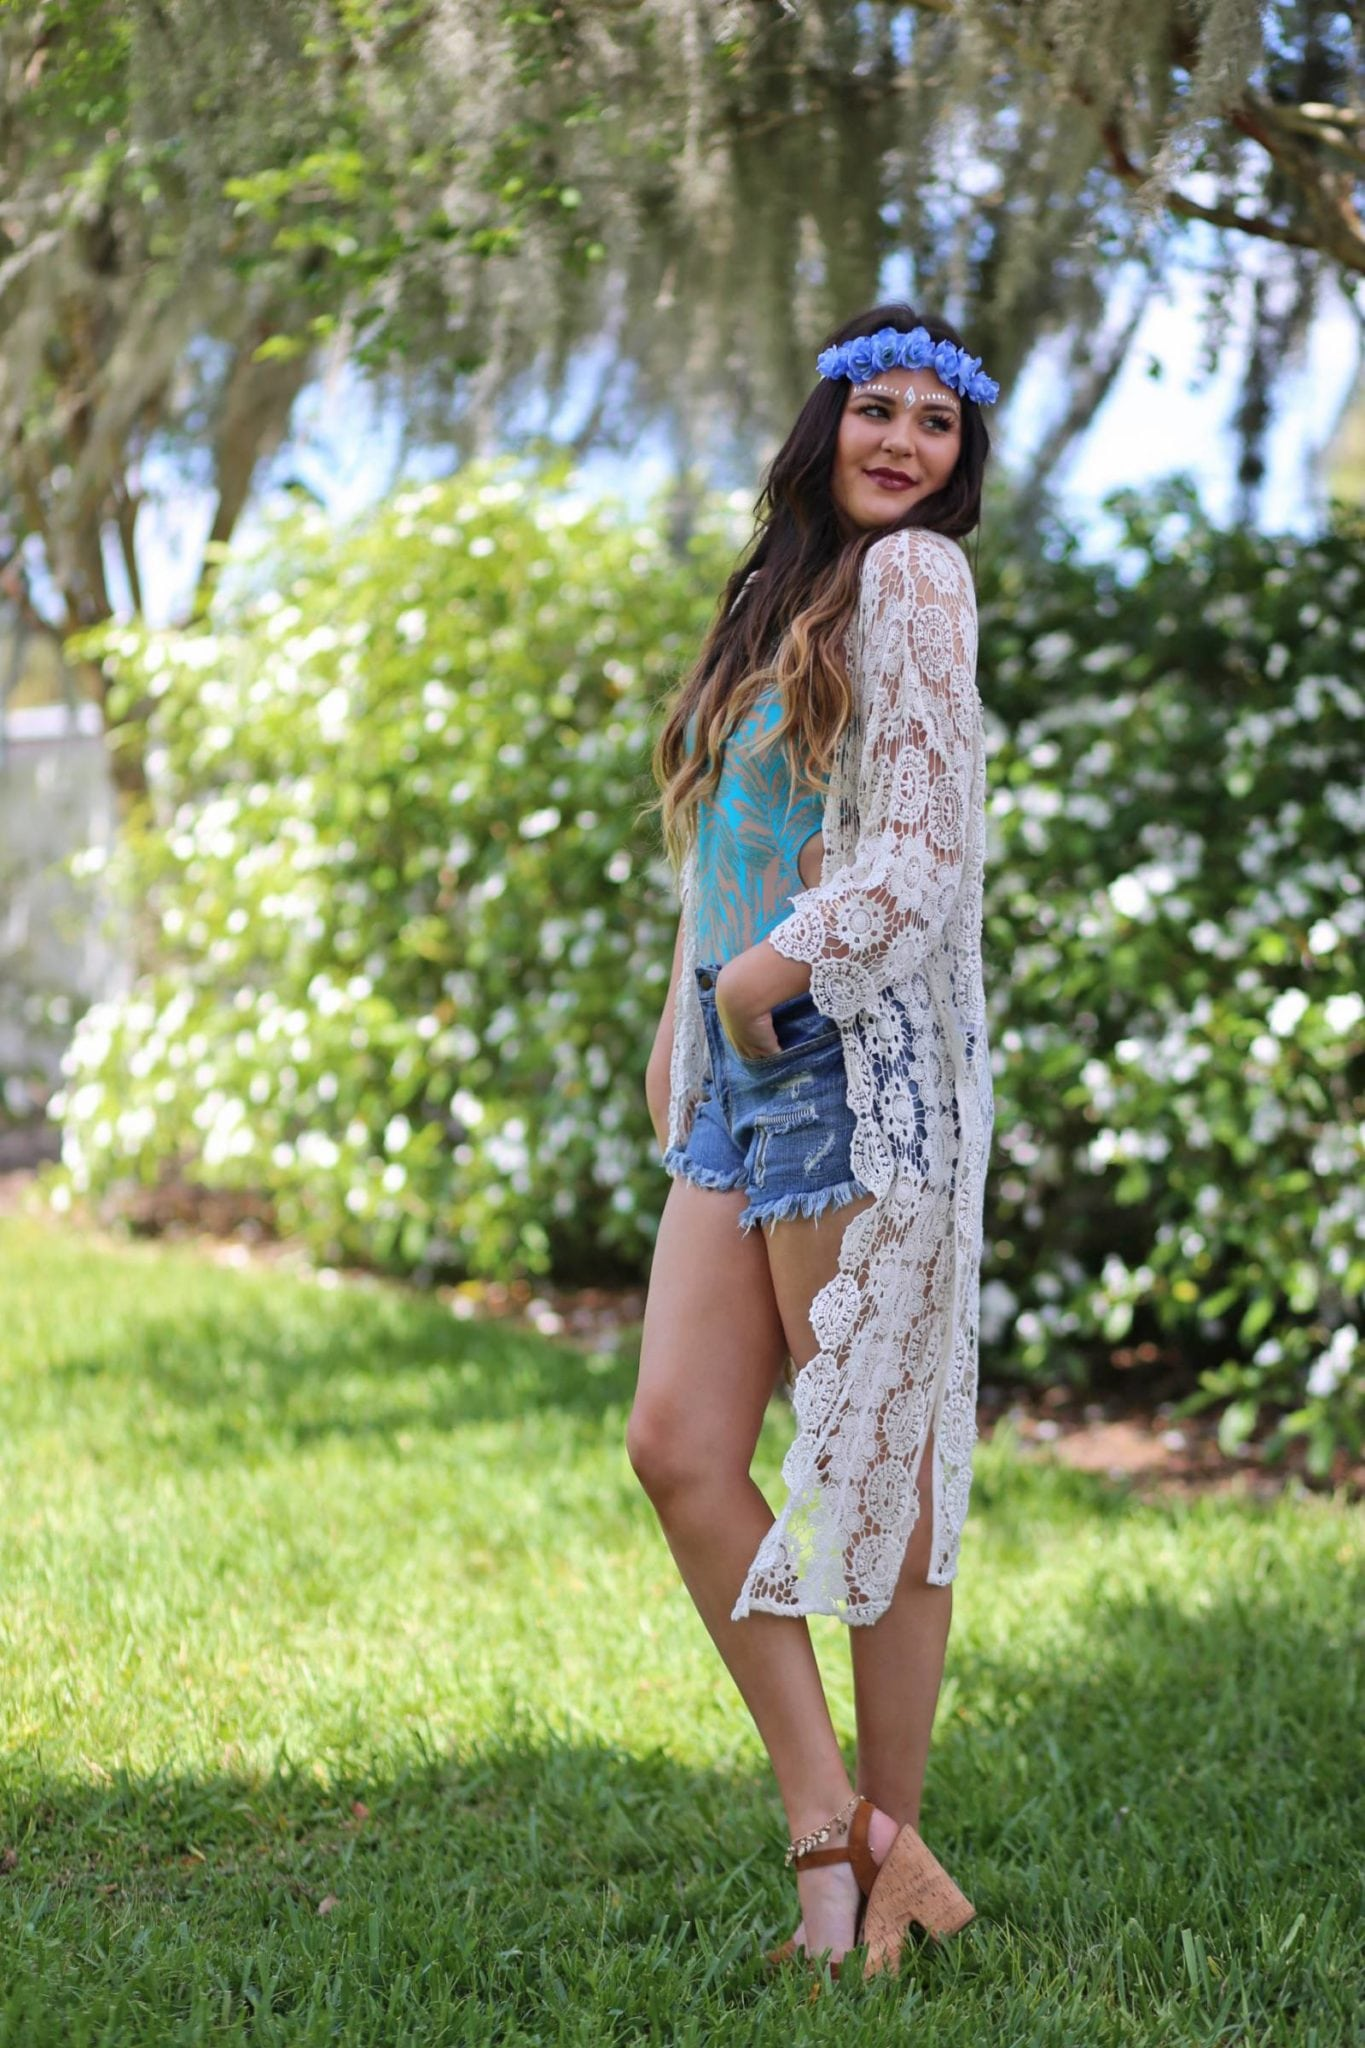 festival style at target | festival outfit ideas | Target | Target fashion | beauty blogger Mash Elle | boho style | festival outfits | festival style coachella outfit ideas